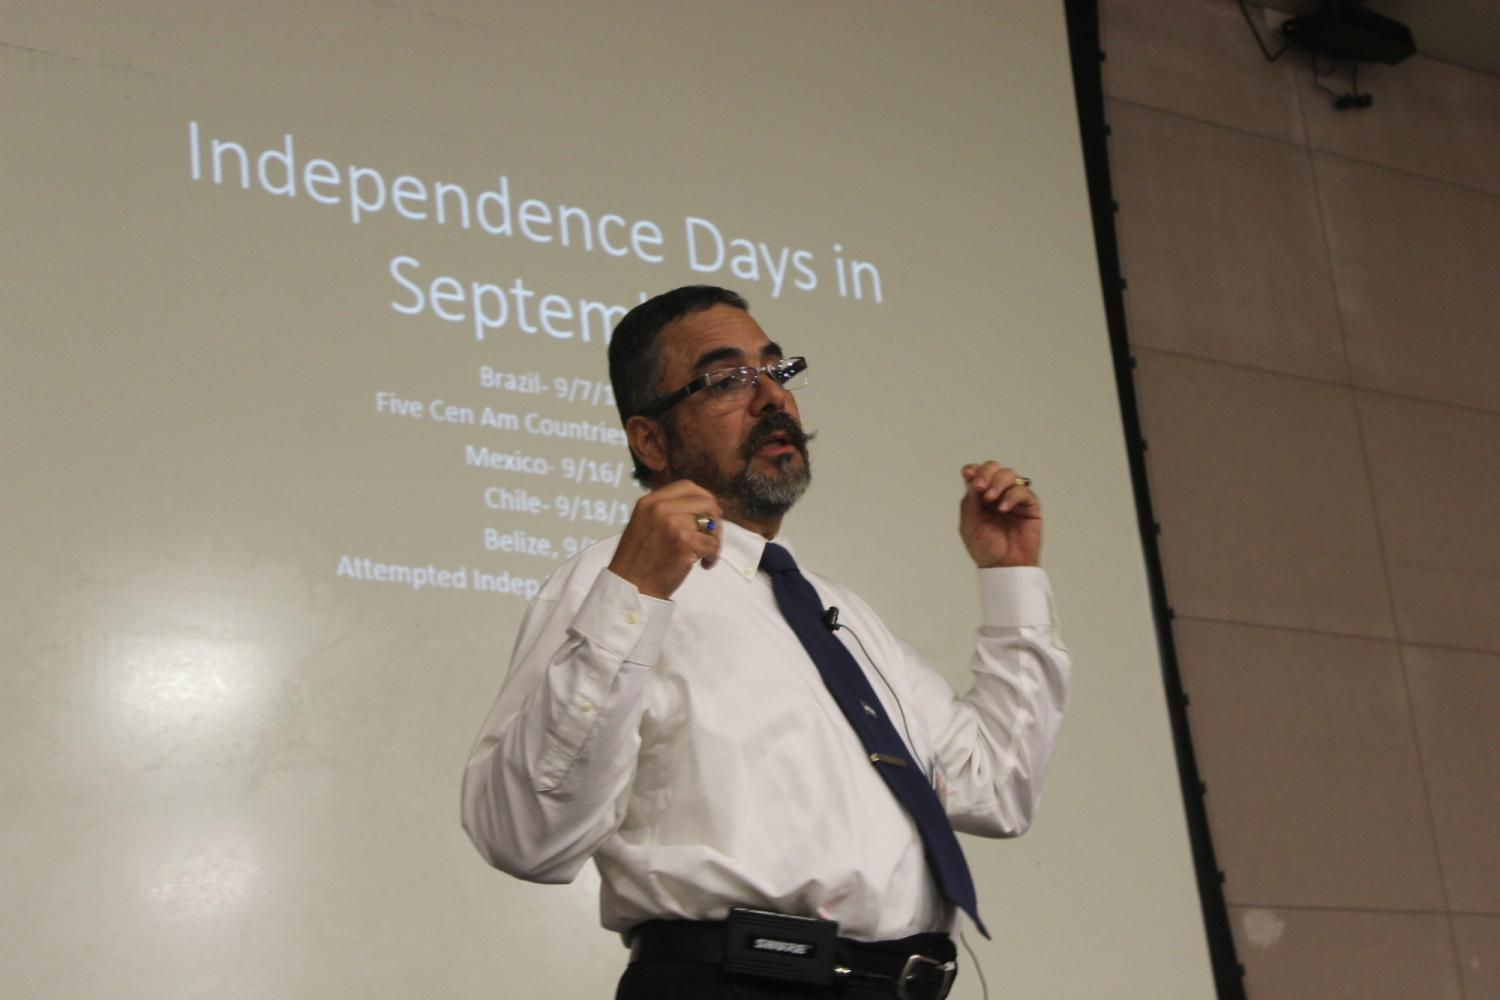 Professor Walter Fernandez begins his lecture on 'Independence Days in September'  and gives students a quick overview of what he will be covering. Puerto Rico will celebrate their attempted independence on September 23rd. Photo credit: Alison Hernandez